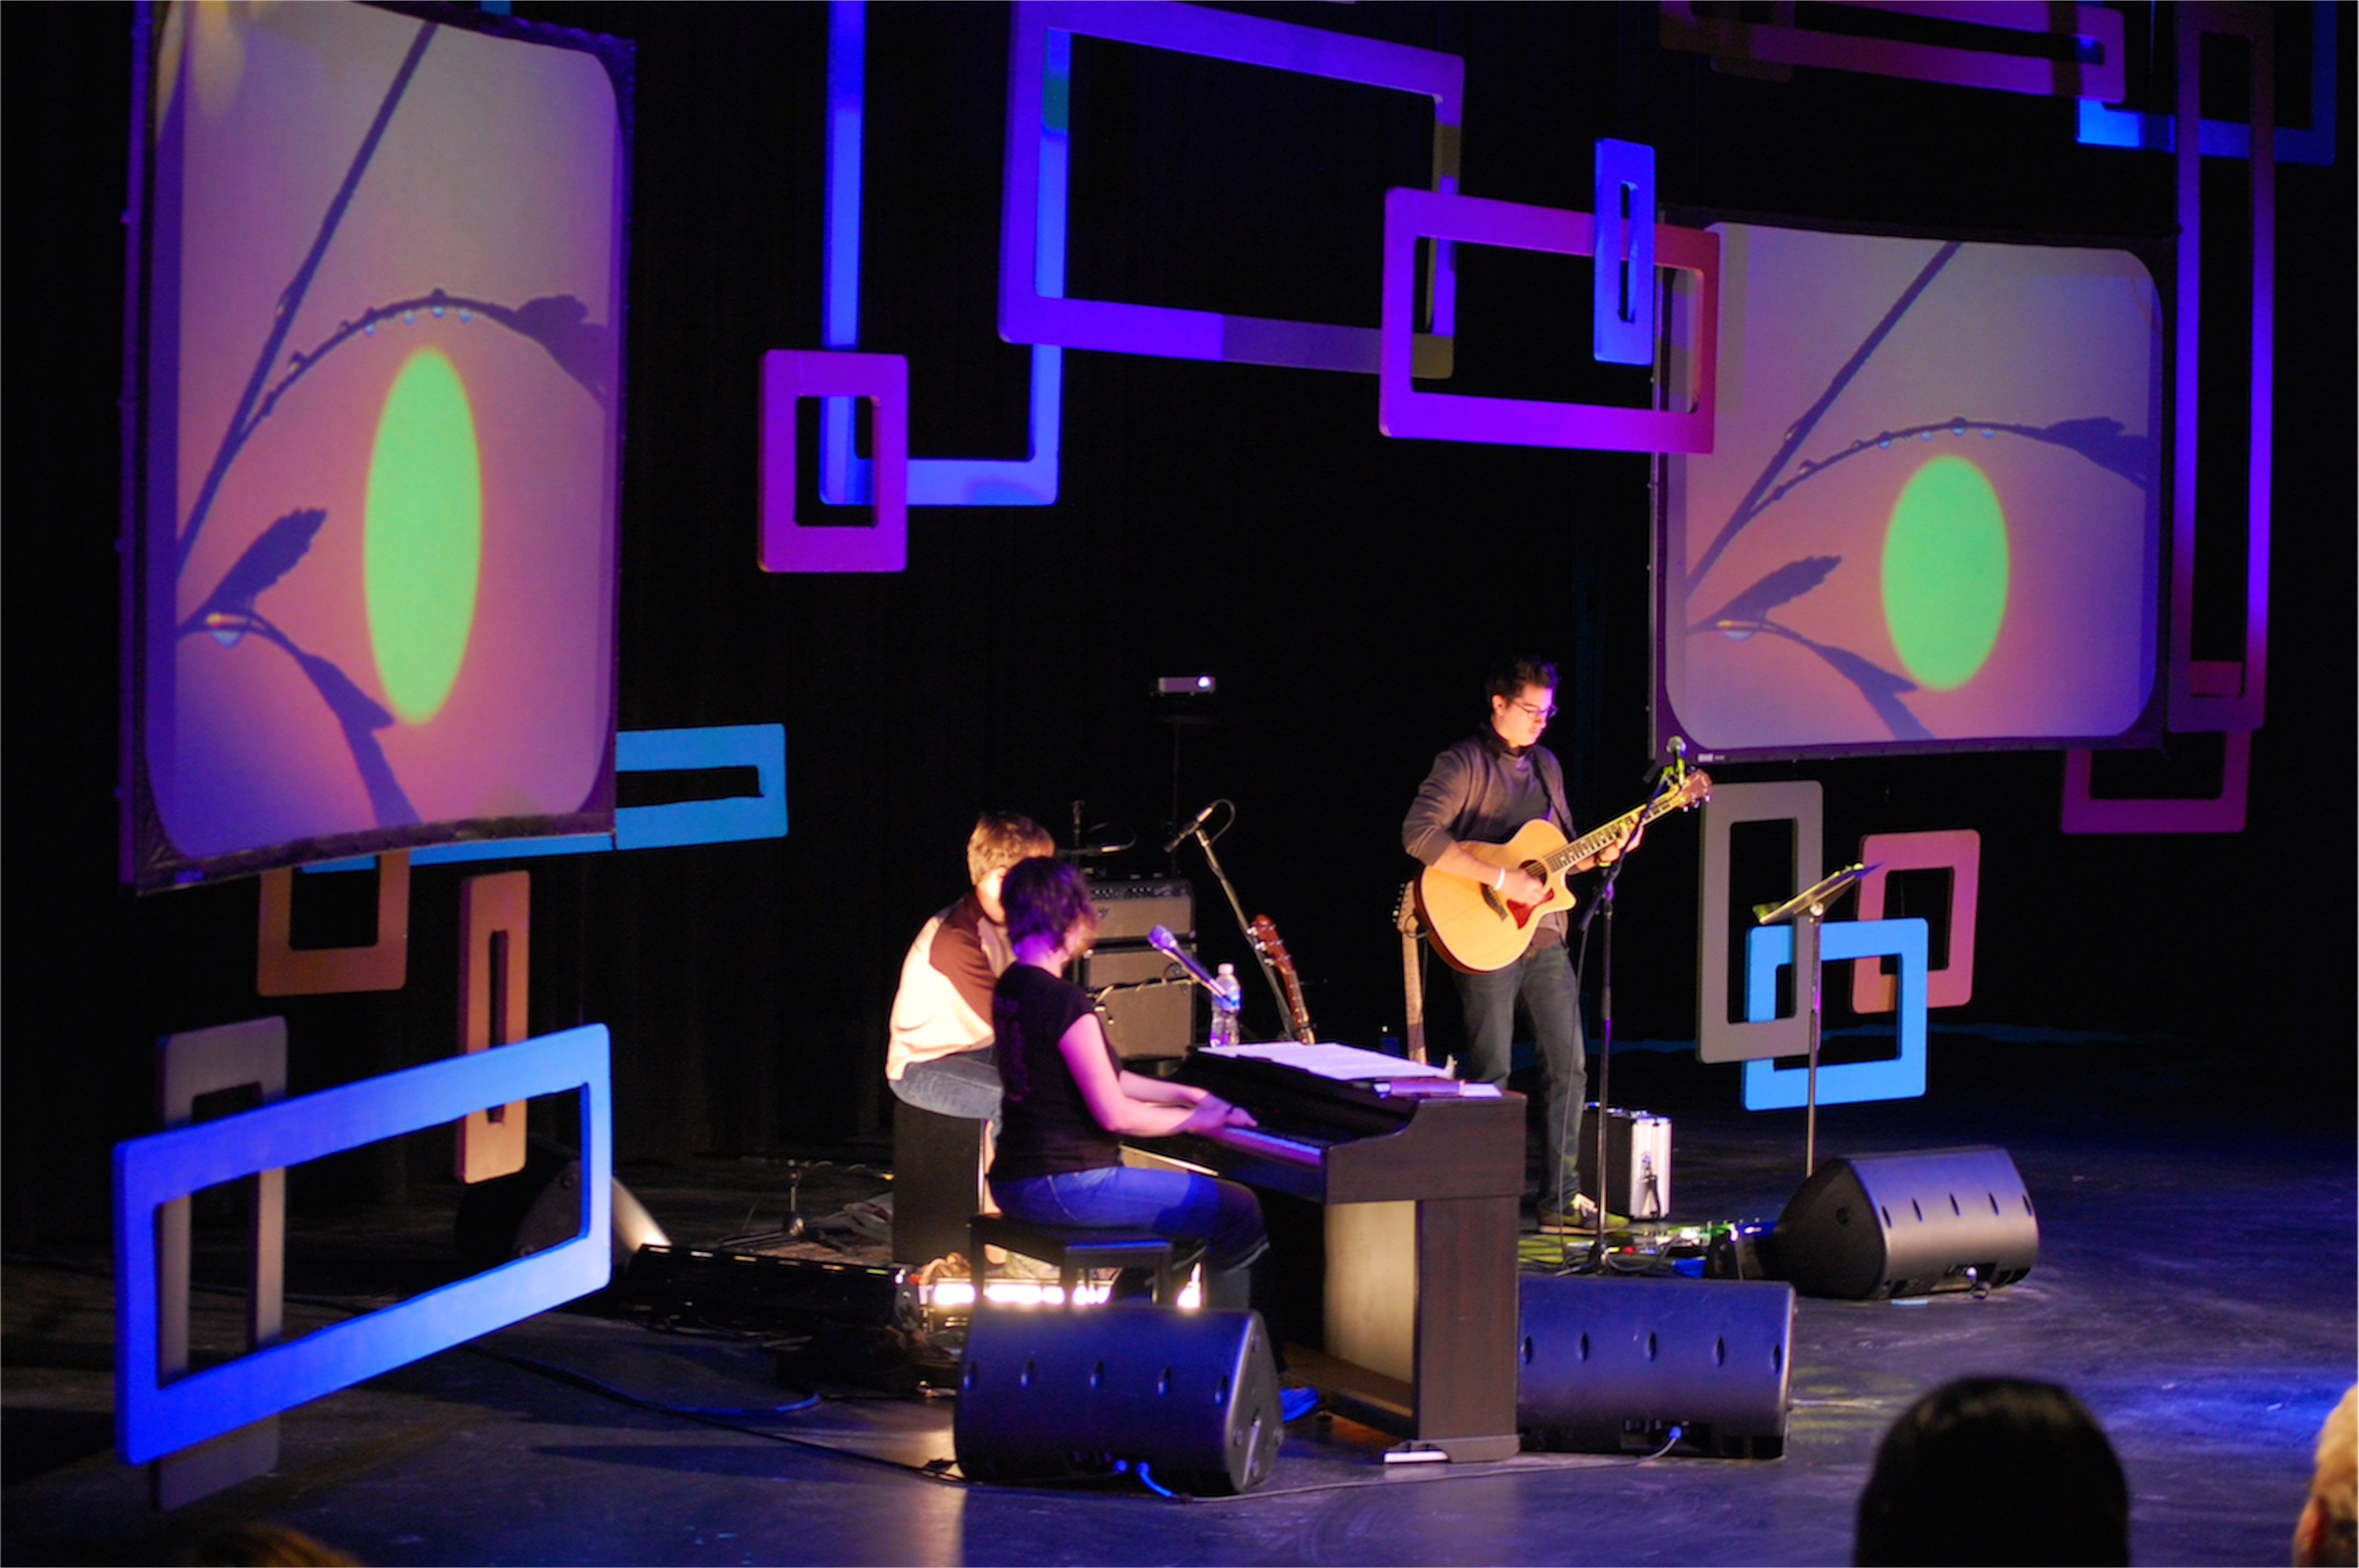 Retro Squares | Church Stage Design Ideas